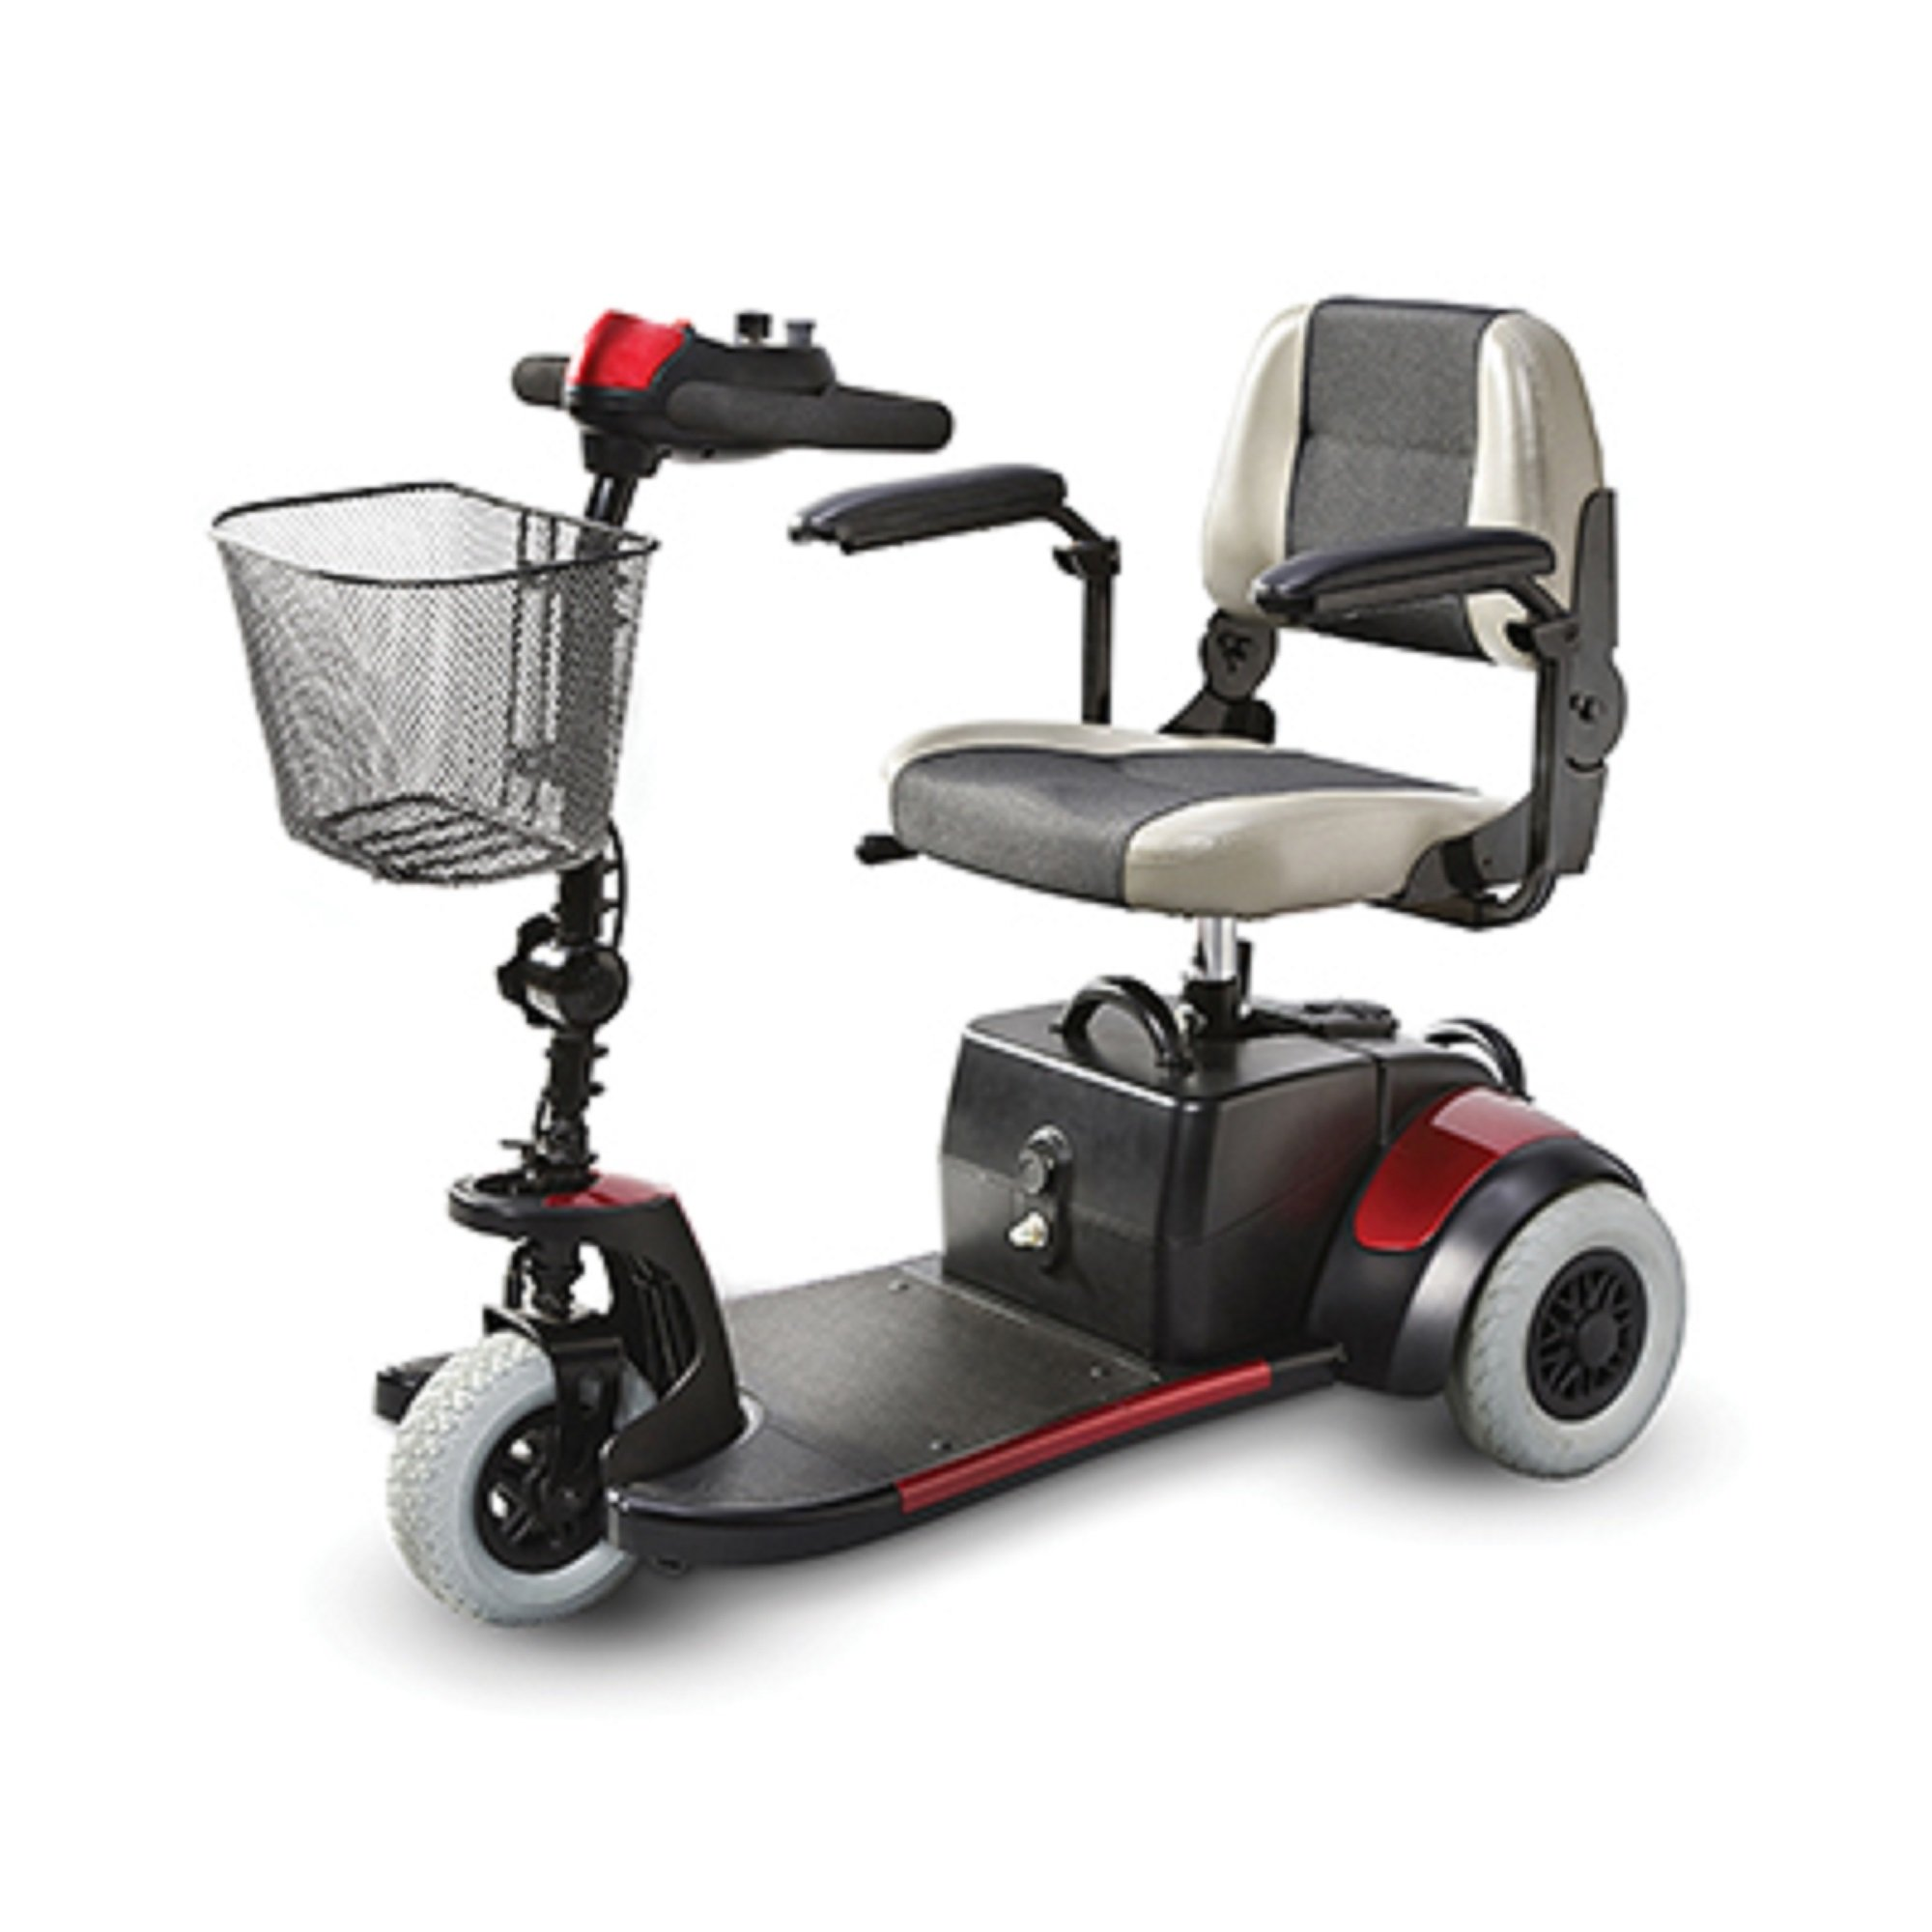 Merits Health Products - Mini Coupe - 3-Wheel Super Micro Electric Scooter - 16.5''W x 15.5''D - Red